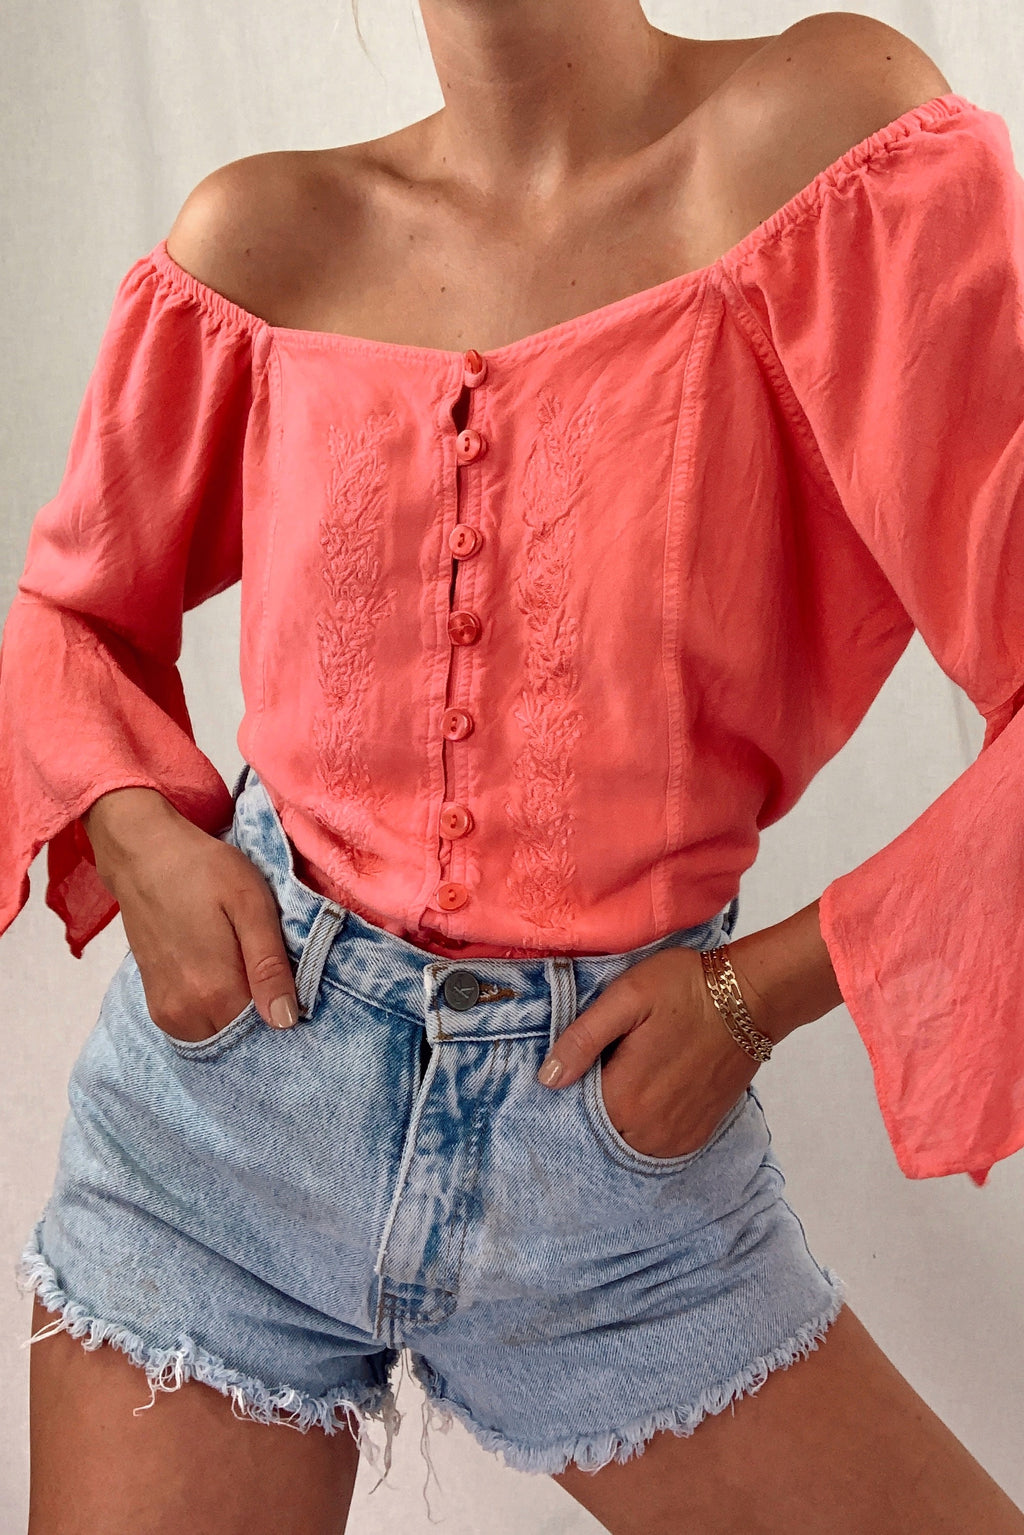 70's Off The Shoulder Top (One Size Fits All)